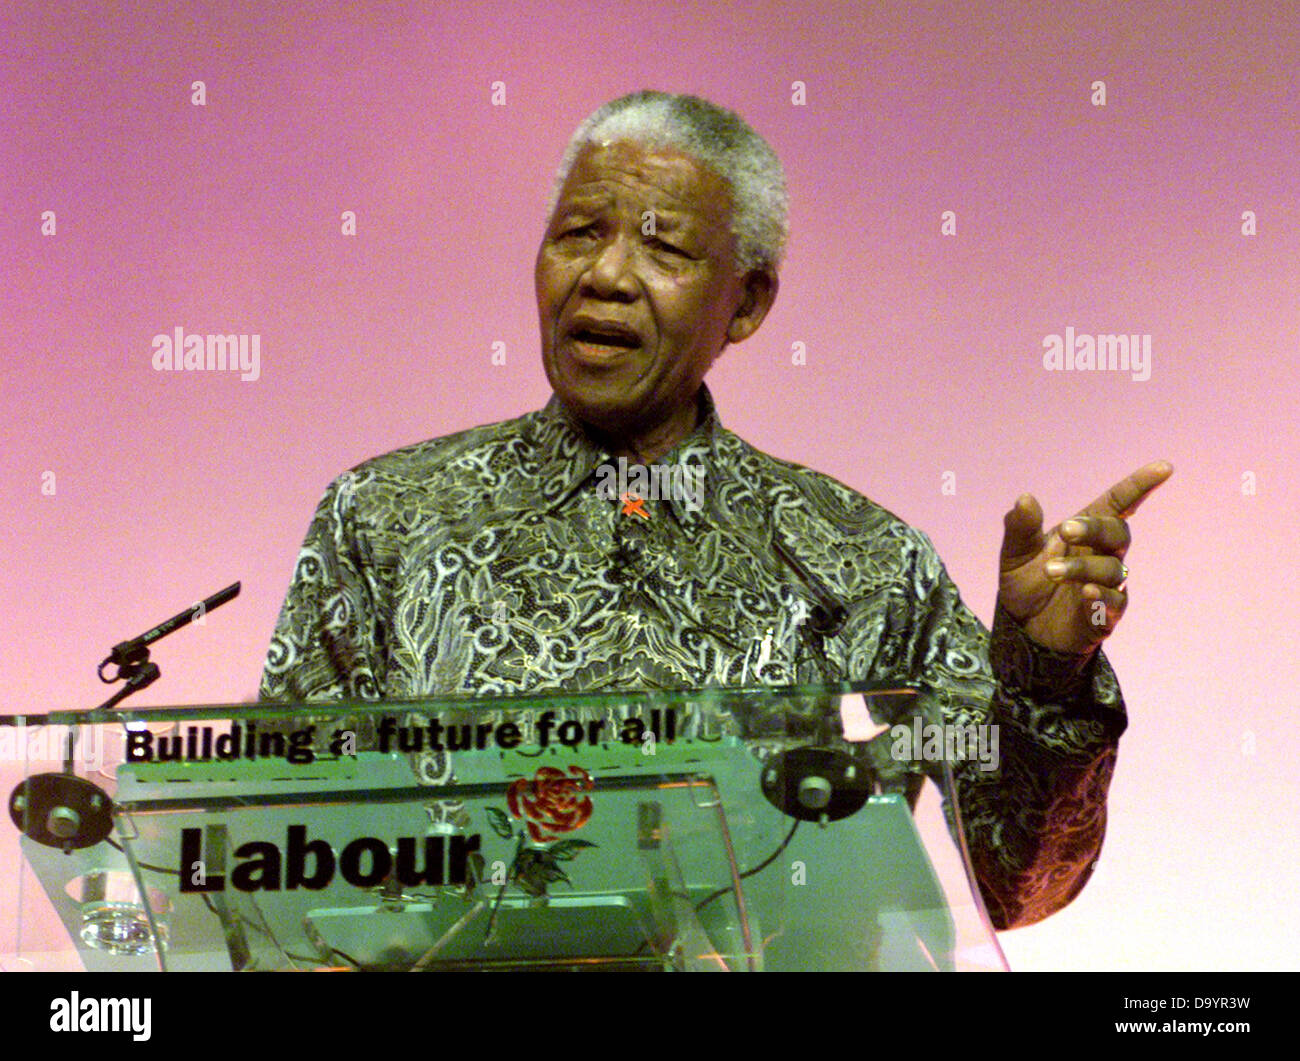 South African President Nelson Mandela speaking at the Labour Party Conference in Brighton September 2000 - Stock Image